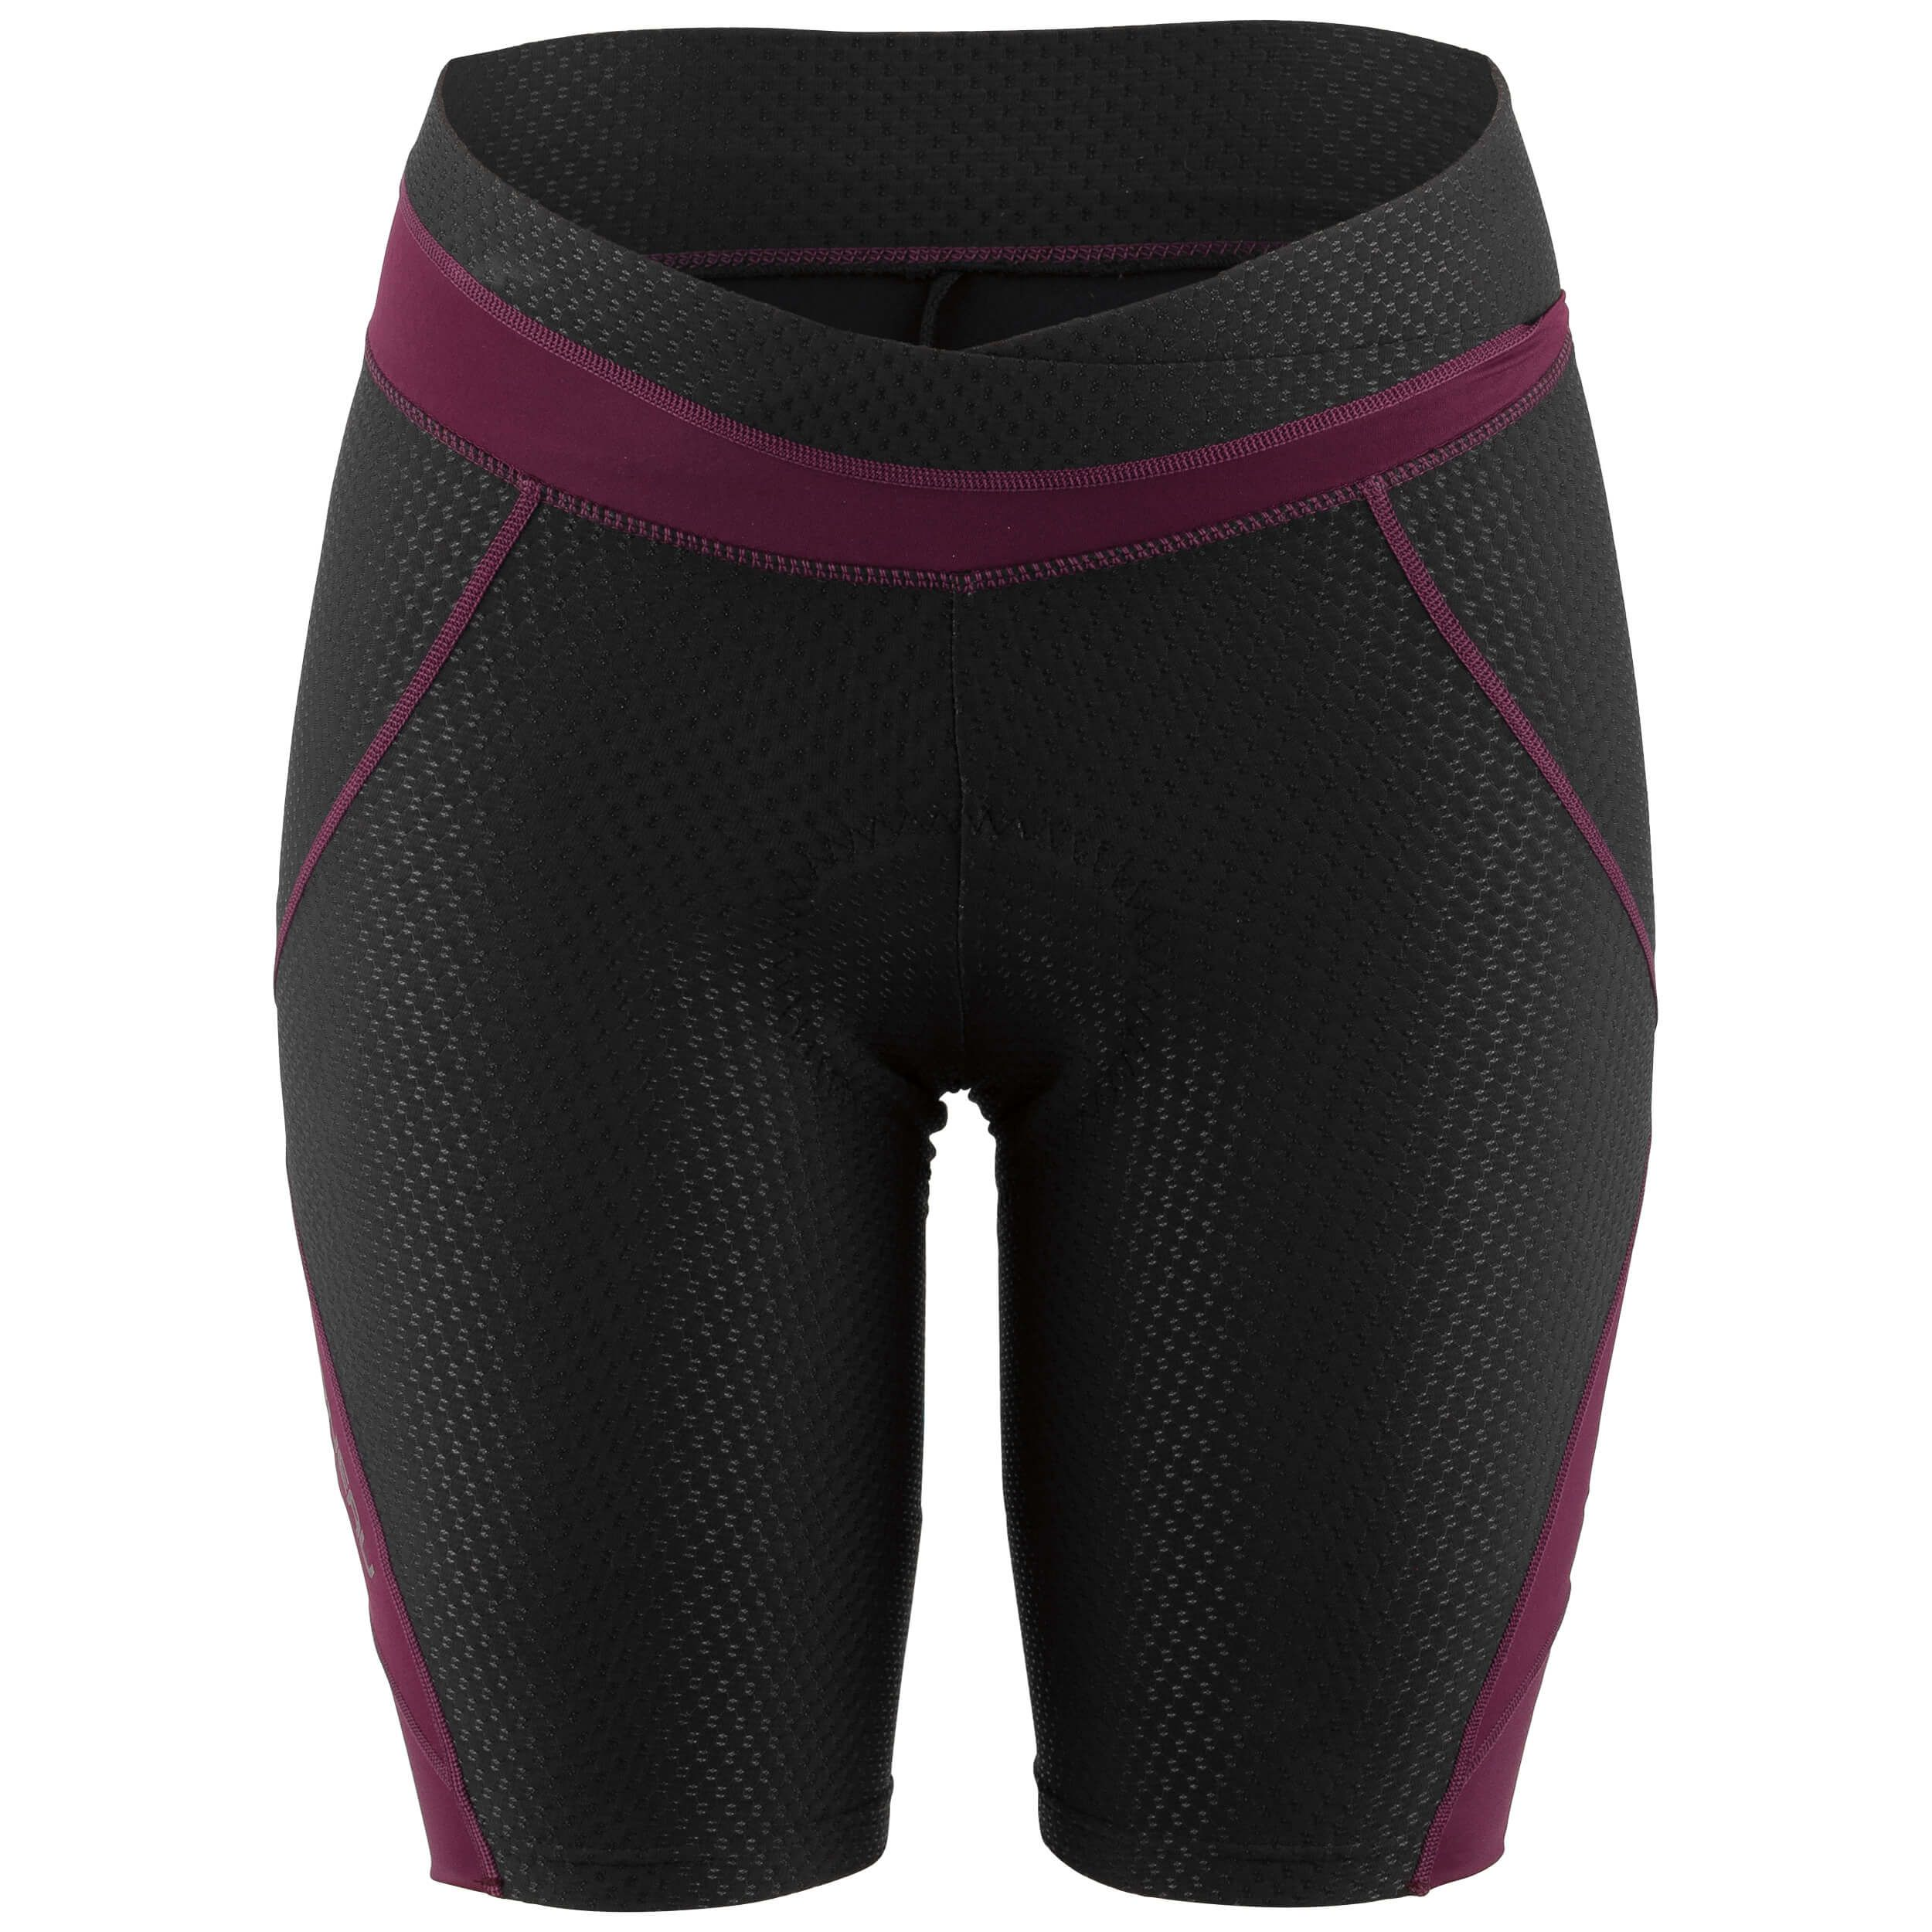 73908cdd5 Women s Cb Carbon 2 Cycling Shorts Women s Cb Carbon 2 Cycling Shorts ...